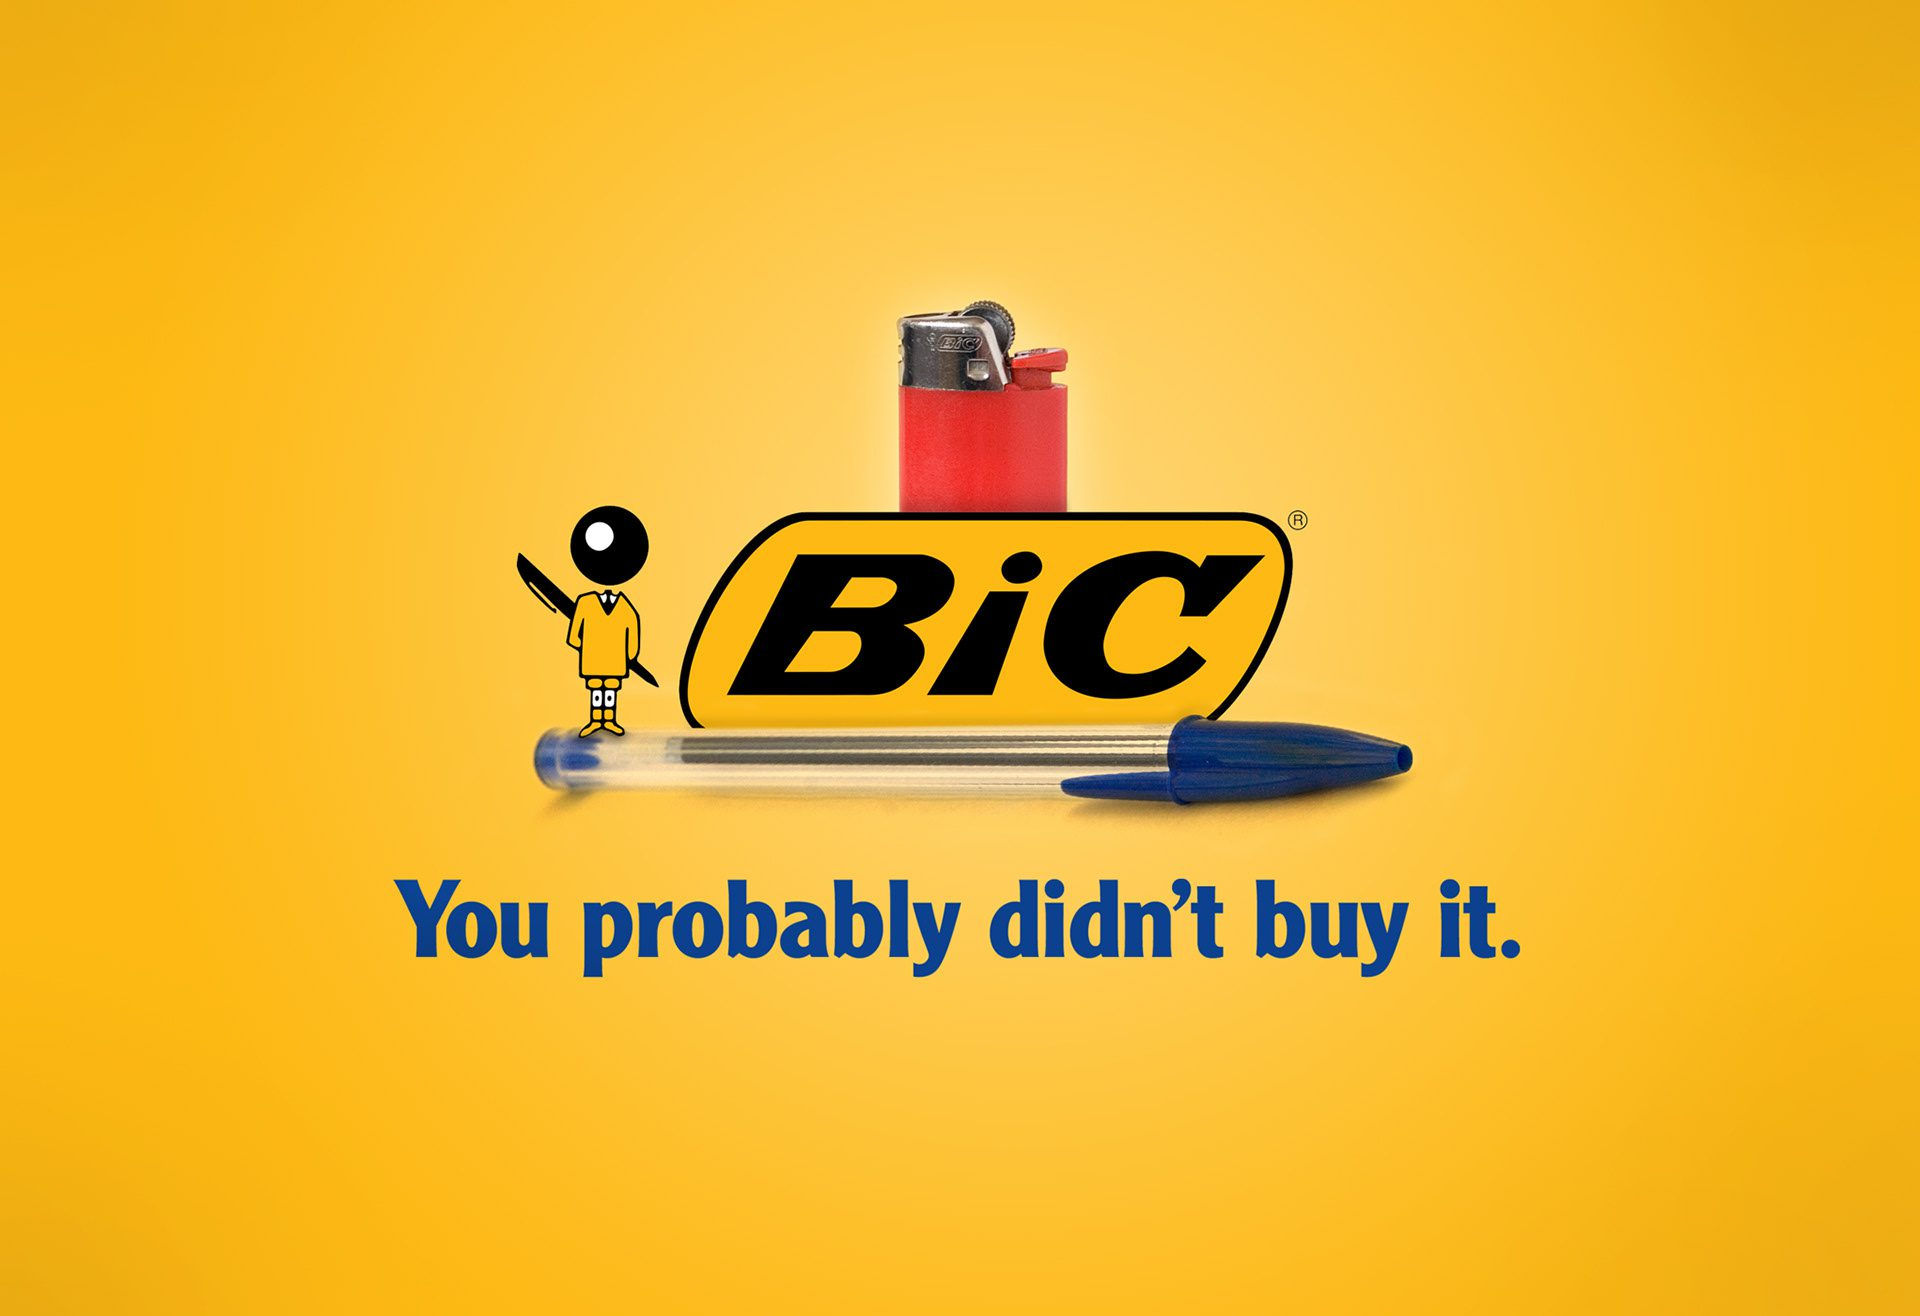 bic - you probably didn't buy it